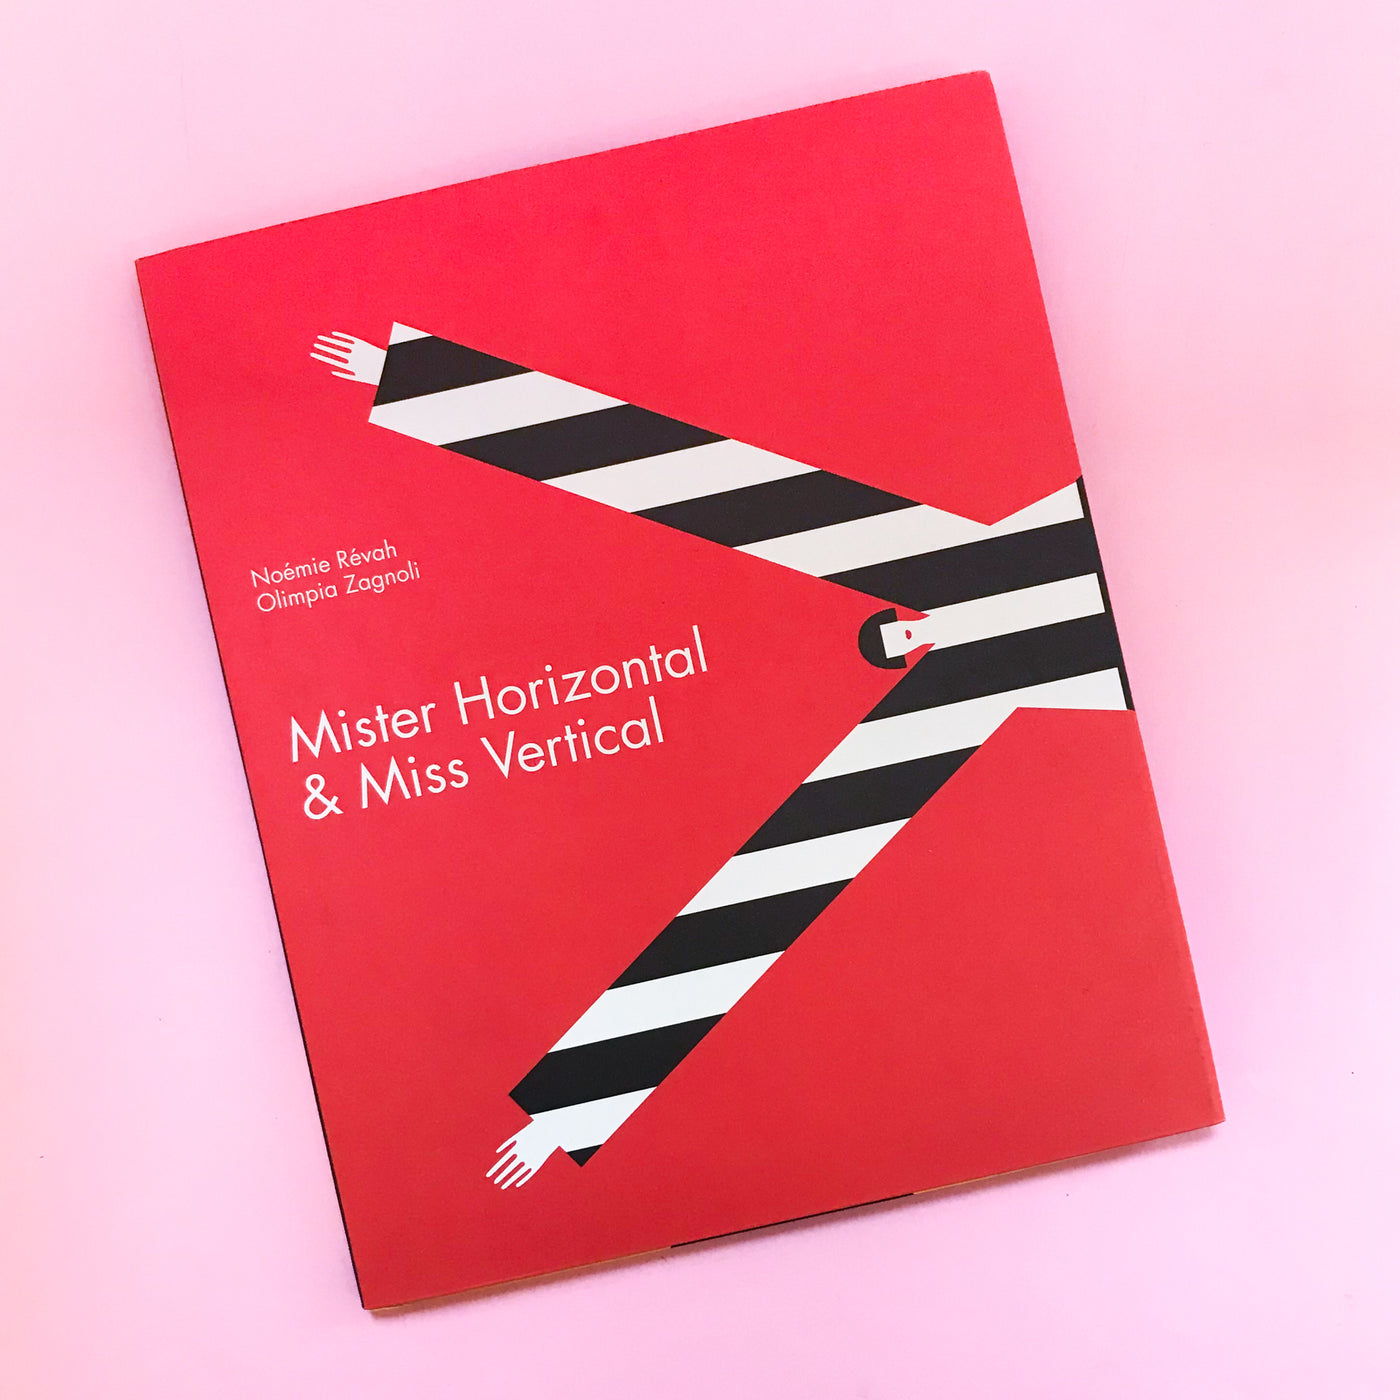 Mister Horizontal and Miss Vertical by Noemie Revah and Olimpia Zagnoli